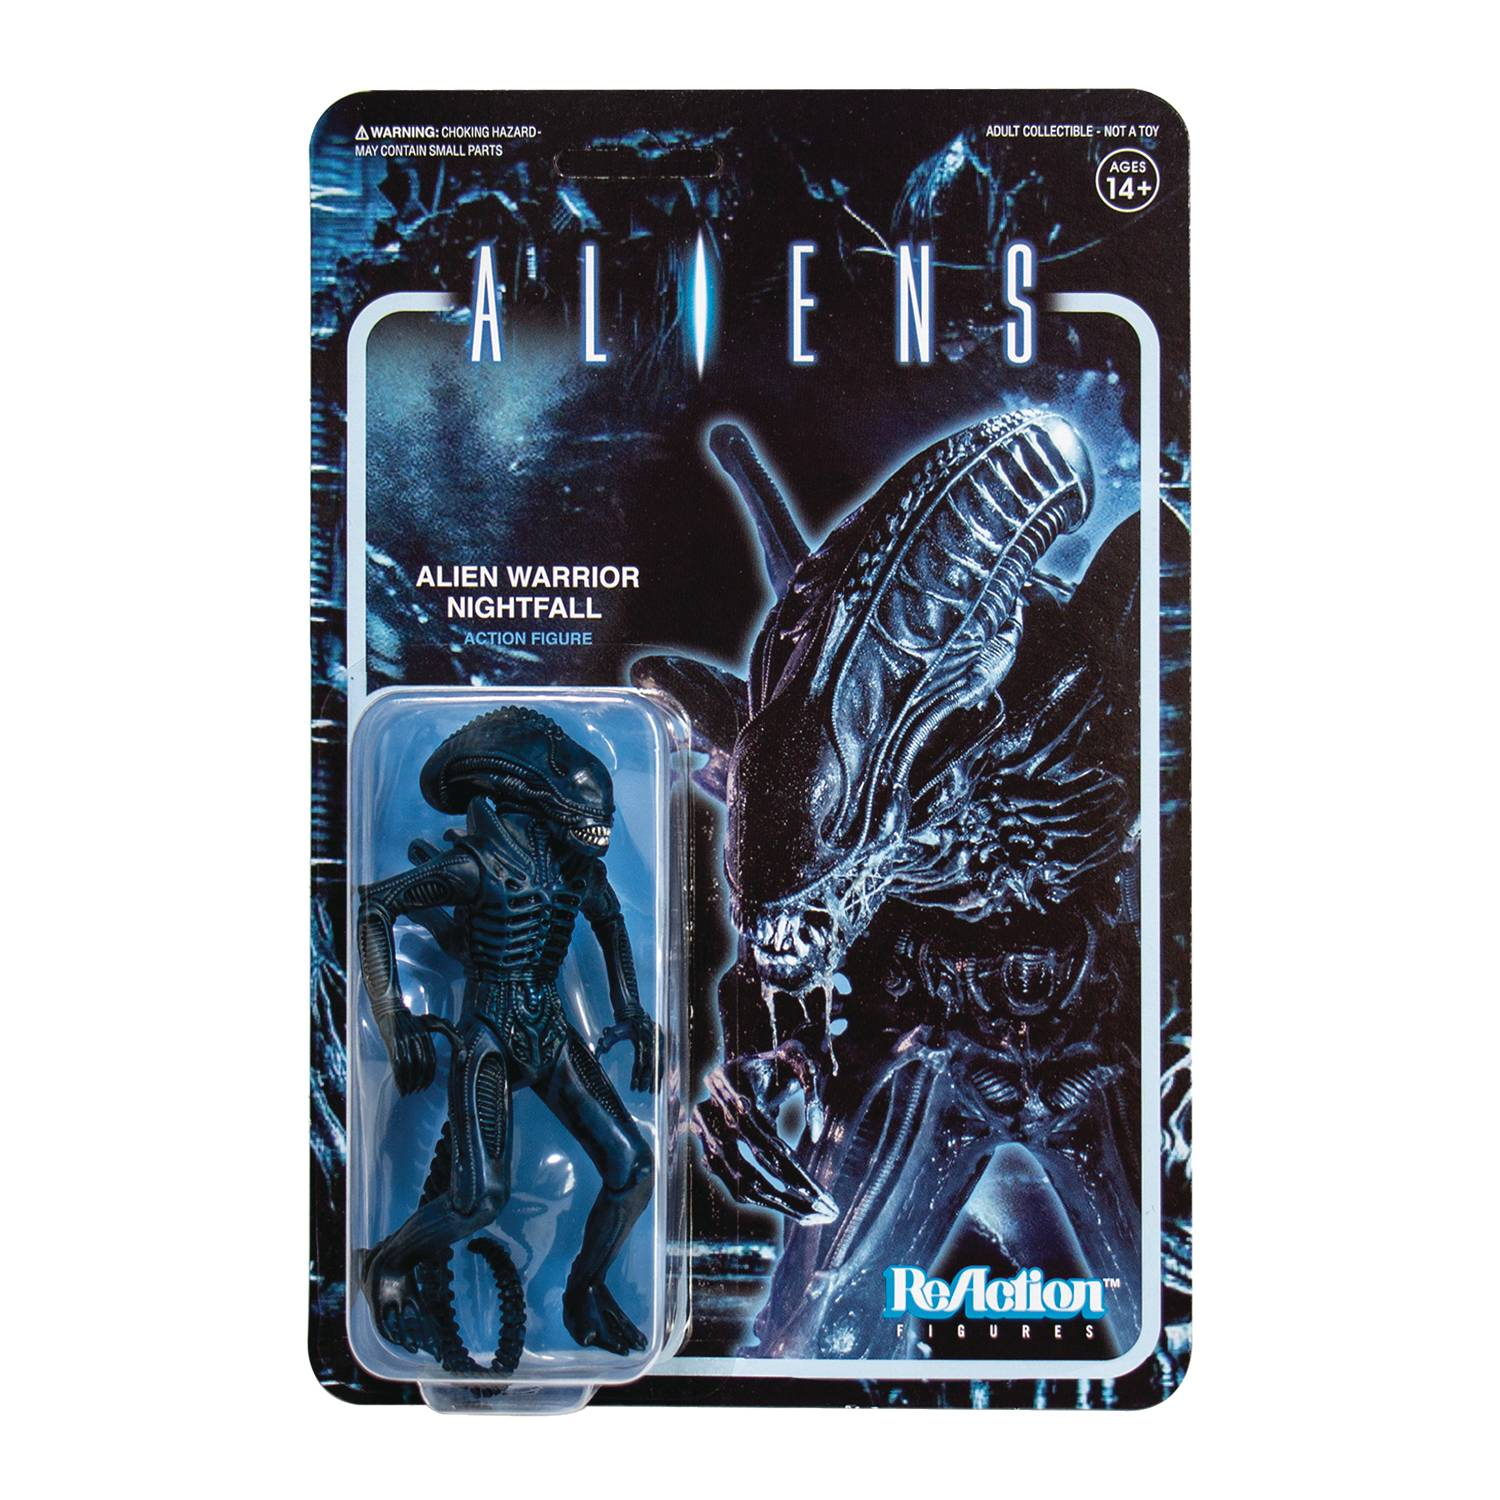 Reaction Figure Alien Warrior Nightfall Figure